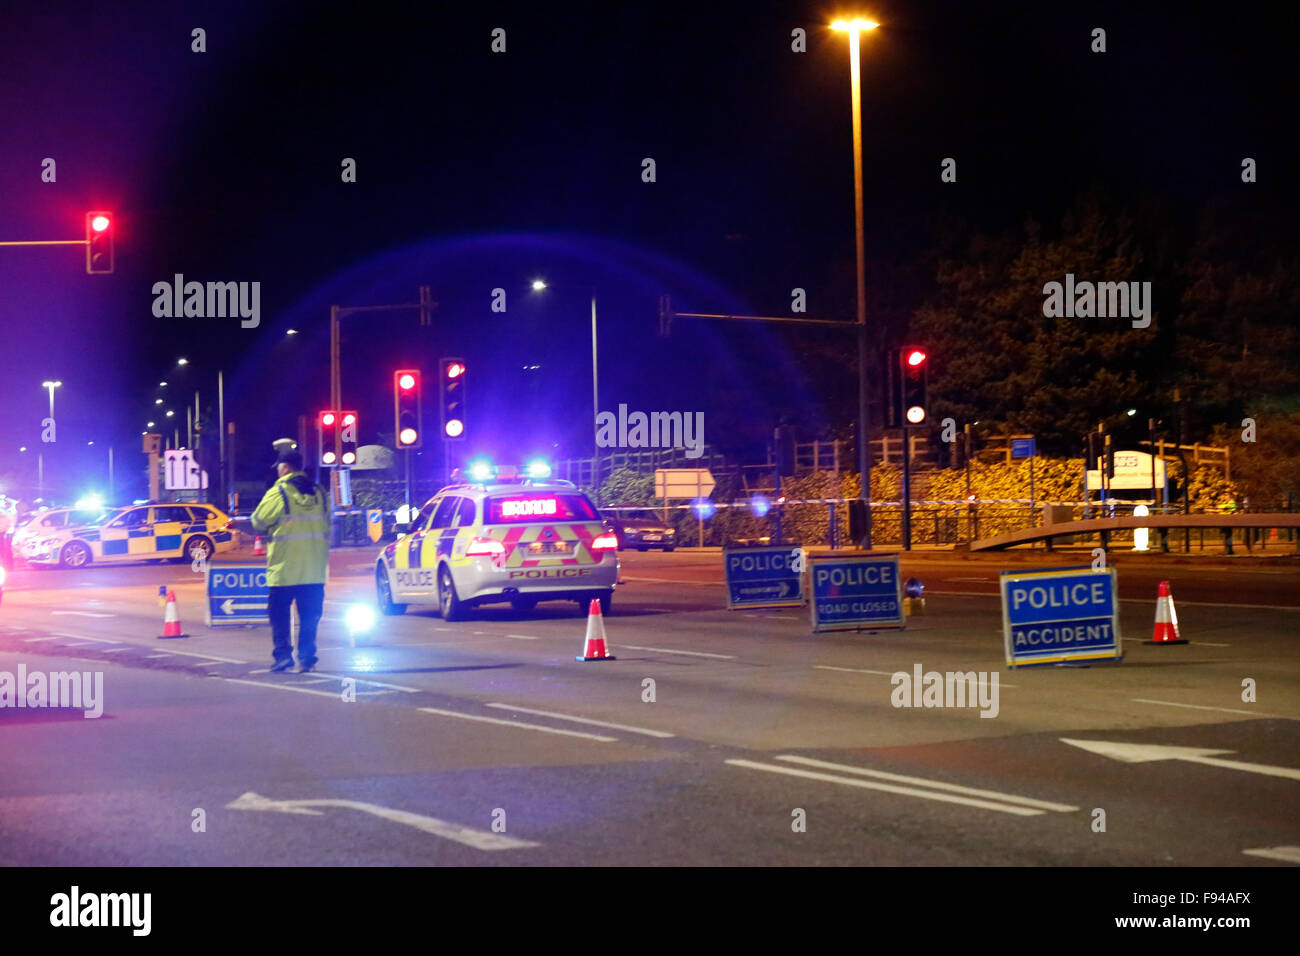 Bournemouth, Dorset, UK. 13th December, 2015. A couple out walking have been mowed down by a car in Bournemouth Stock Photo